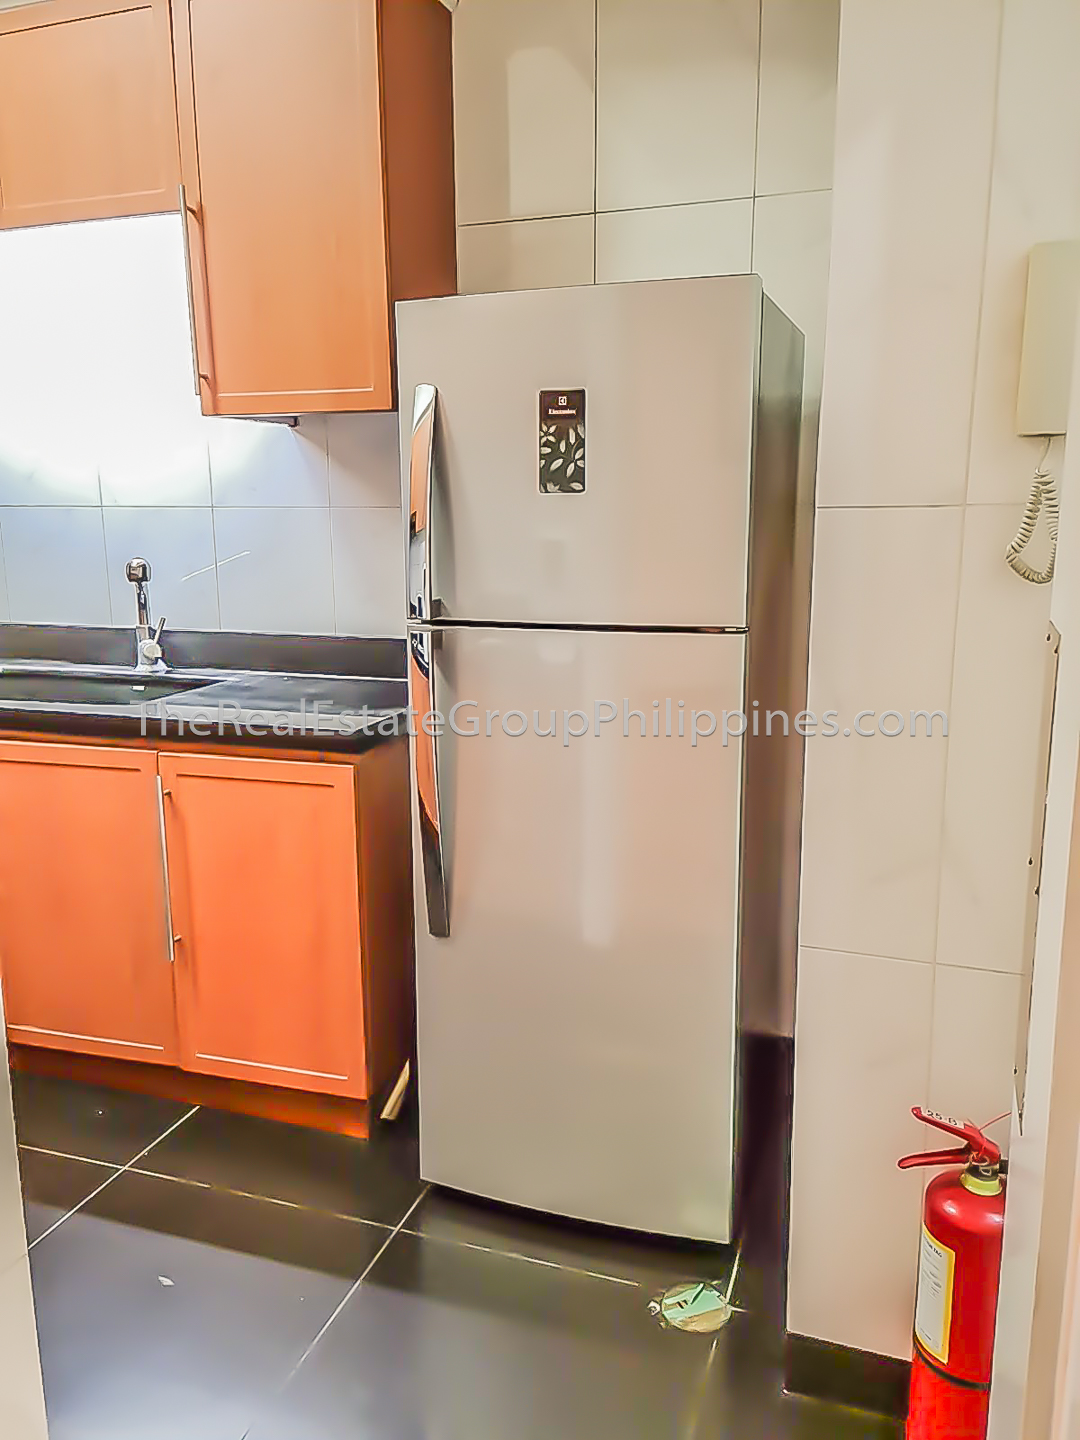 2BR Condo For Rent, The Shang Grand Tower, Legaspi Village, Makati-9